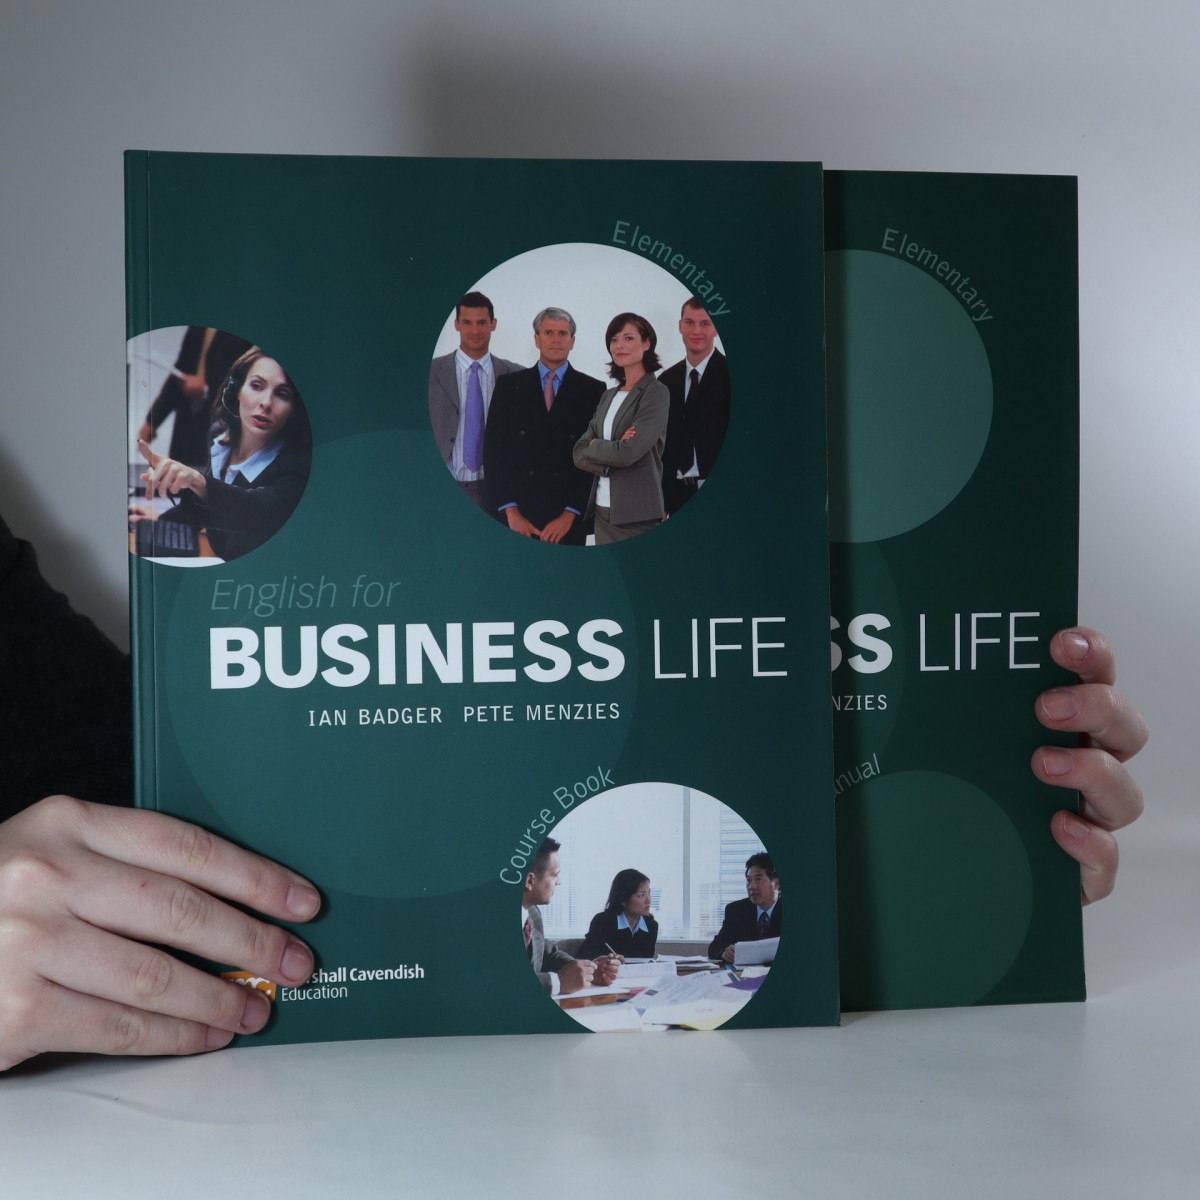 antikvární kniha English for Business Life Elementary. Course book. Trainer's manual. (komplet, 2 svazky), 2005